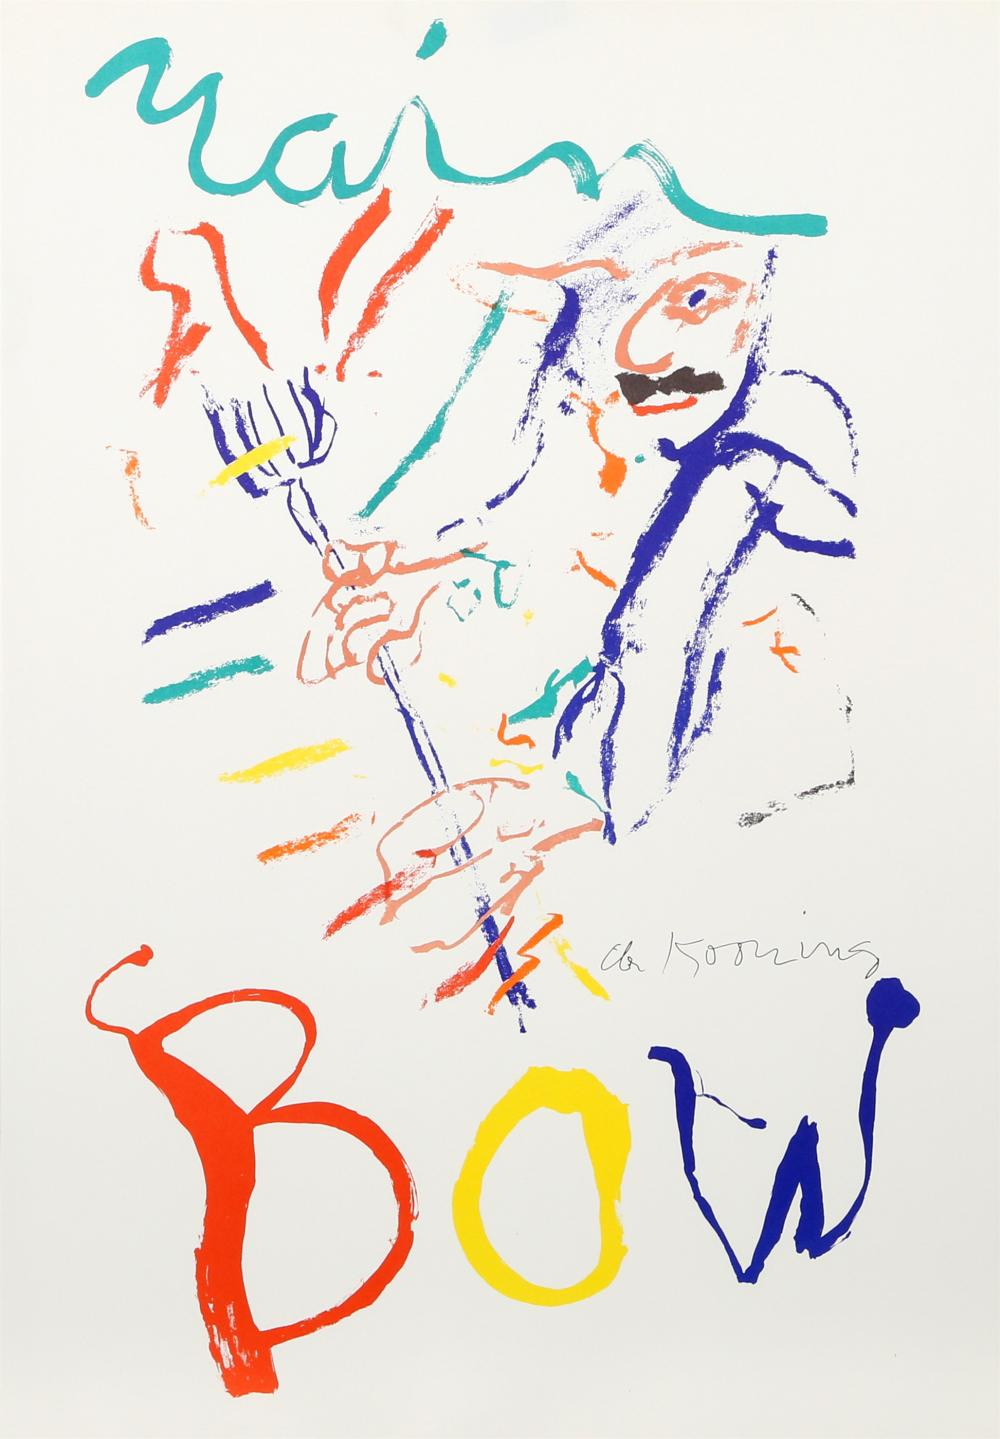 WILLEM DE KOONING, RAINBOW: THELONIUS MONK, DEVIL AT THE KEYBOARD, LITHOGRAPH ON THIN VELIN